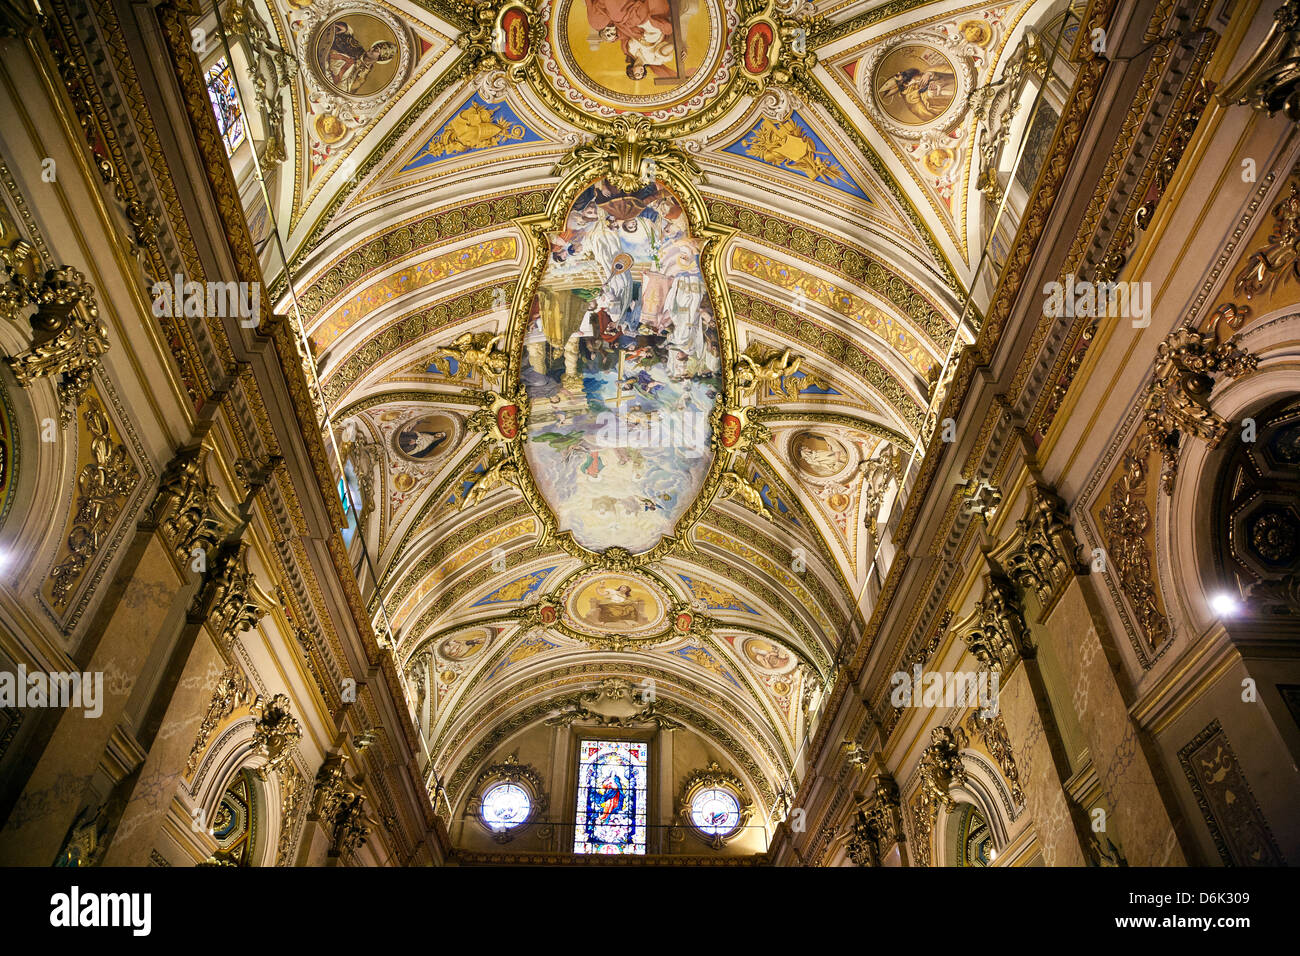 Interior of Iglesia Catedral at Plaza San Martin, Cordoba City, Cordoba Province, Argentina, South America - Stock Image